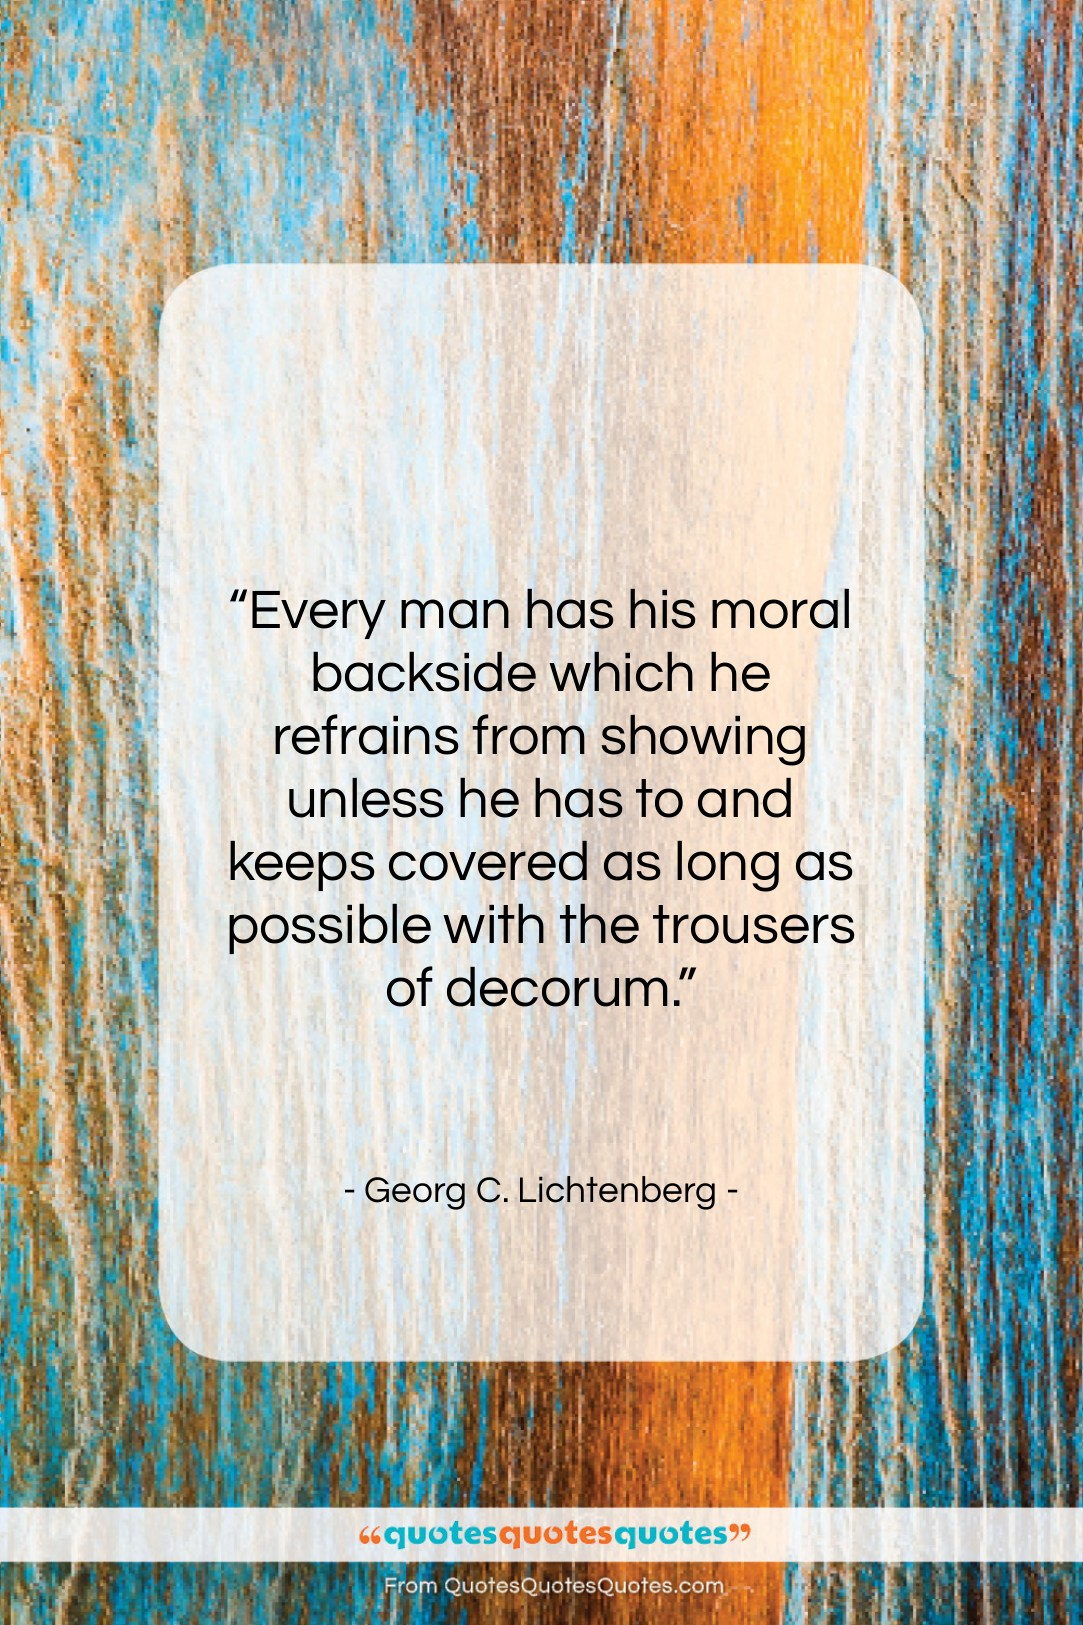 """Georg C. Lichtenberg quote: """"Every man has his moral backside which…""""- at QuotesQuotesQuotes.com"""